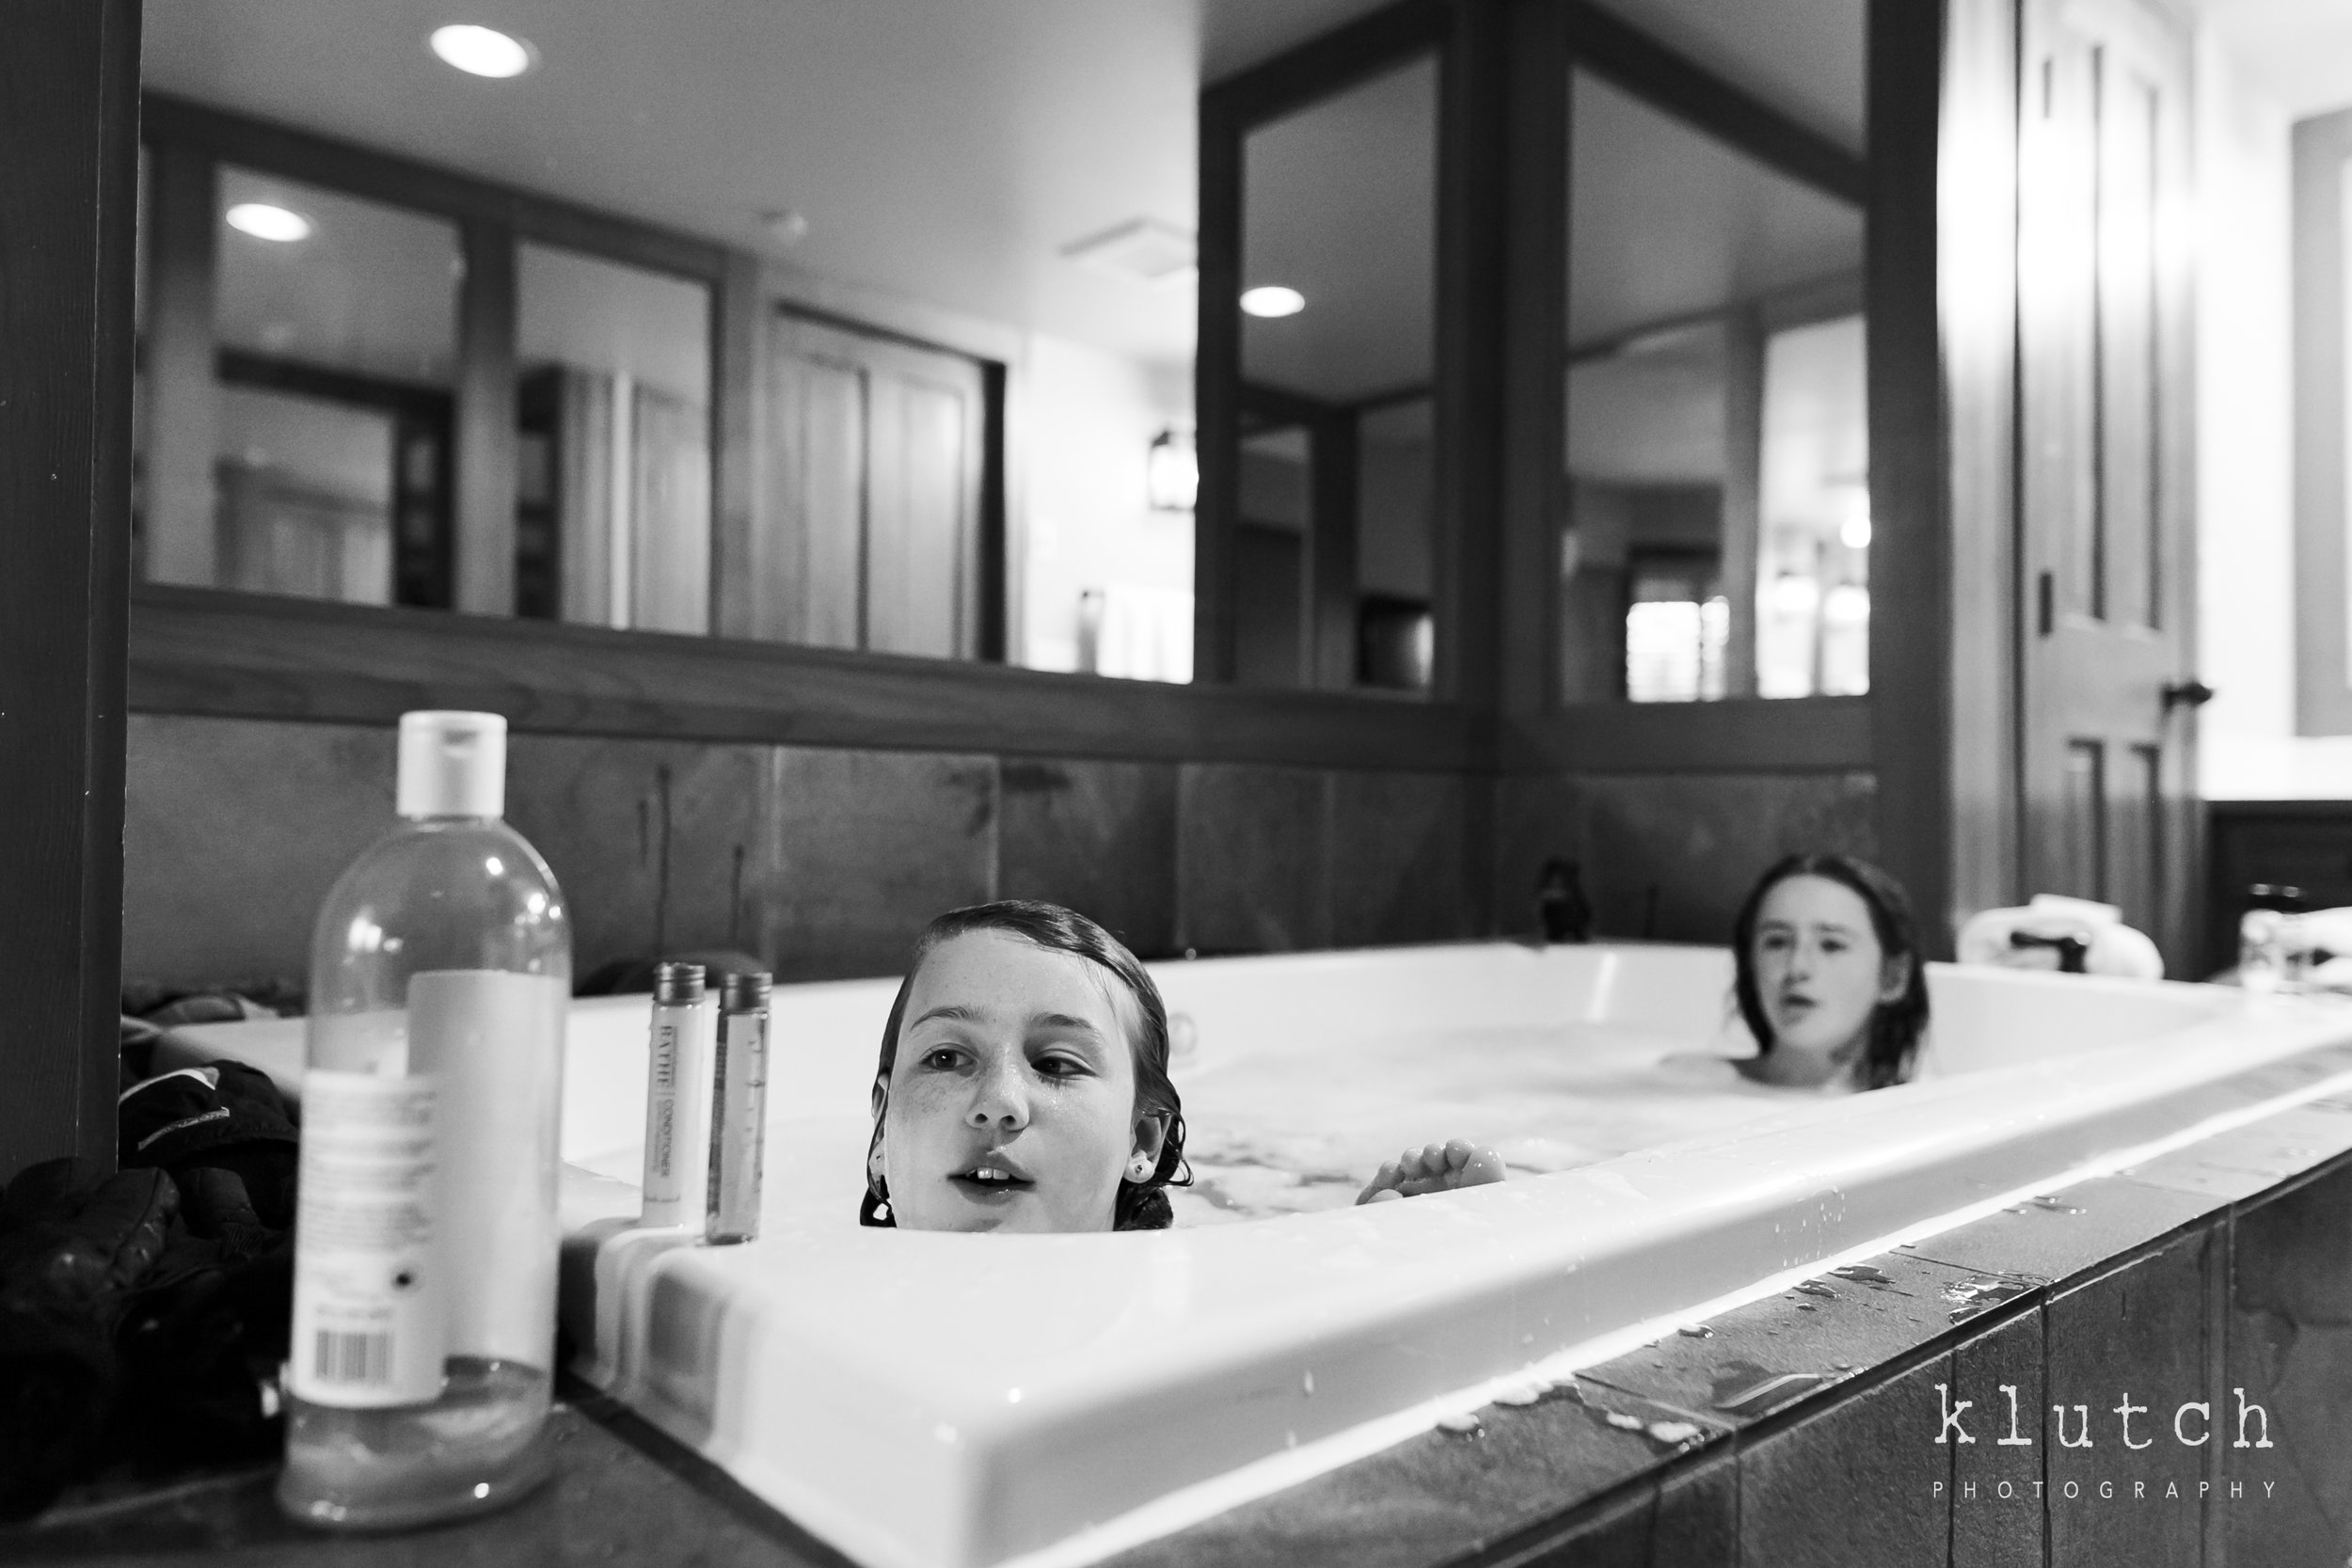 Girls playing in bathtub-Surrey Family Photographer. Vancouver family photographer, klutch Photography, documentary photography, Vancouver documentary photographer, candid photography, lifestyle photographer, a day in the life session, family photography, Vancouver Photographer, Surrey Family Photographer, White Rock family Photographer, Dina Ferreira Stoddard-6133.jpg